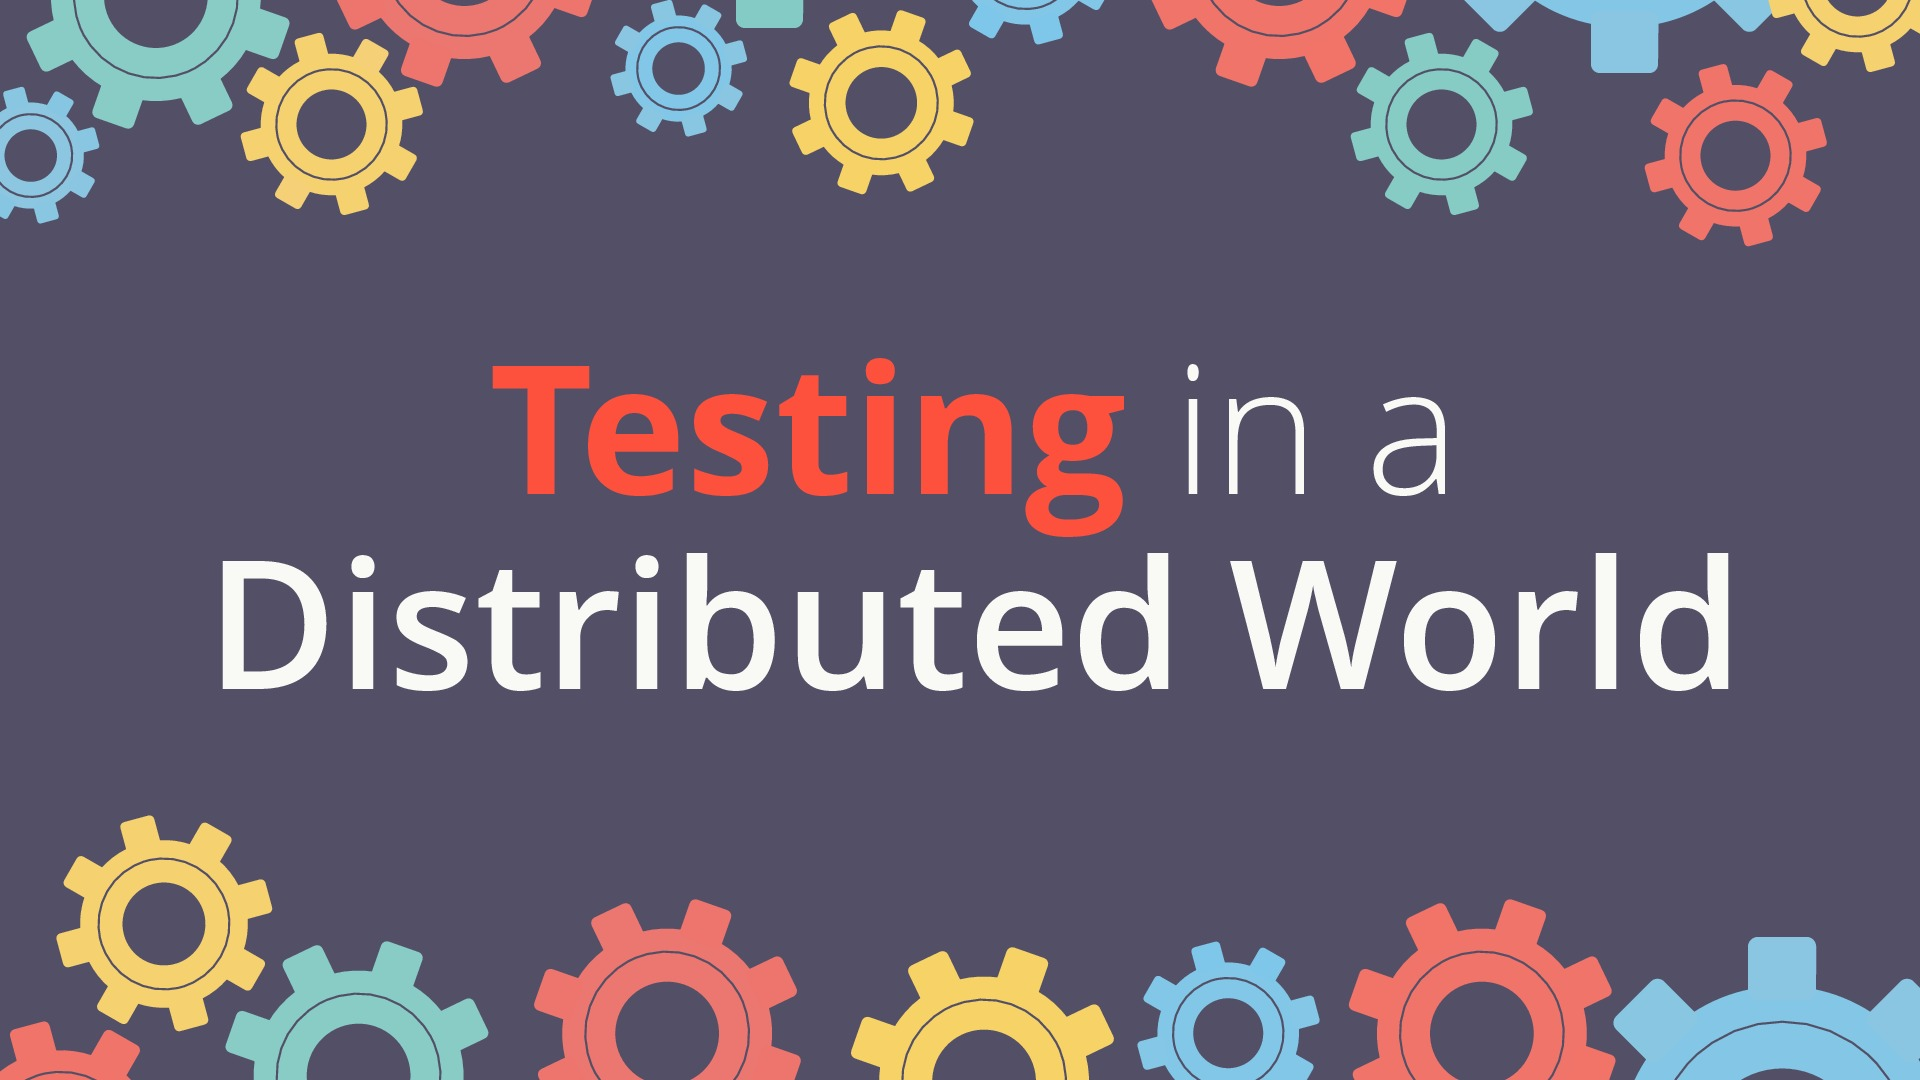 Testing in a Distributed World